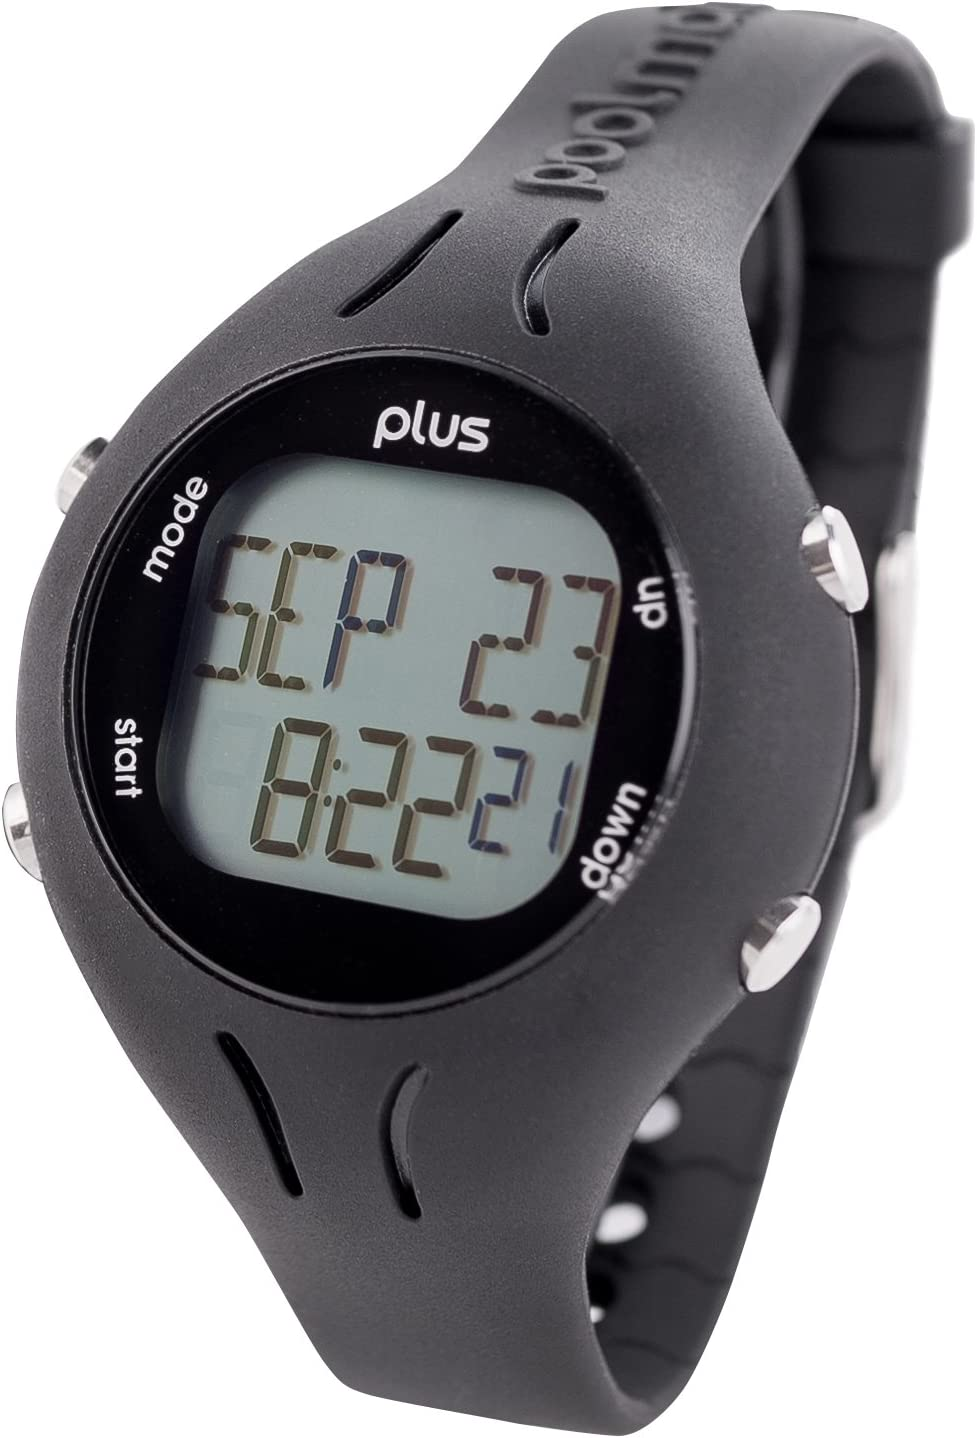 Swimovate Poolmate Plus Watch -DS